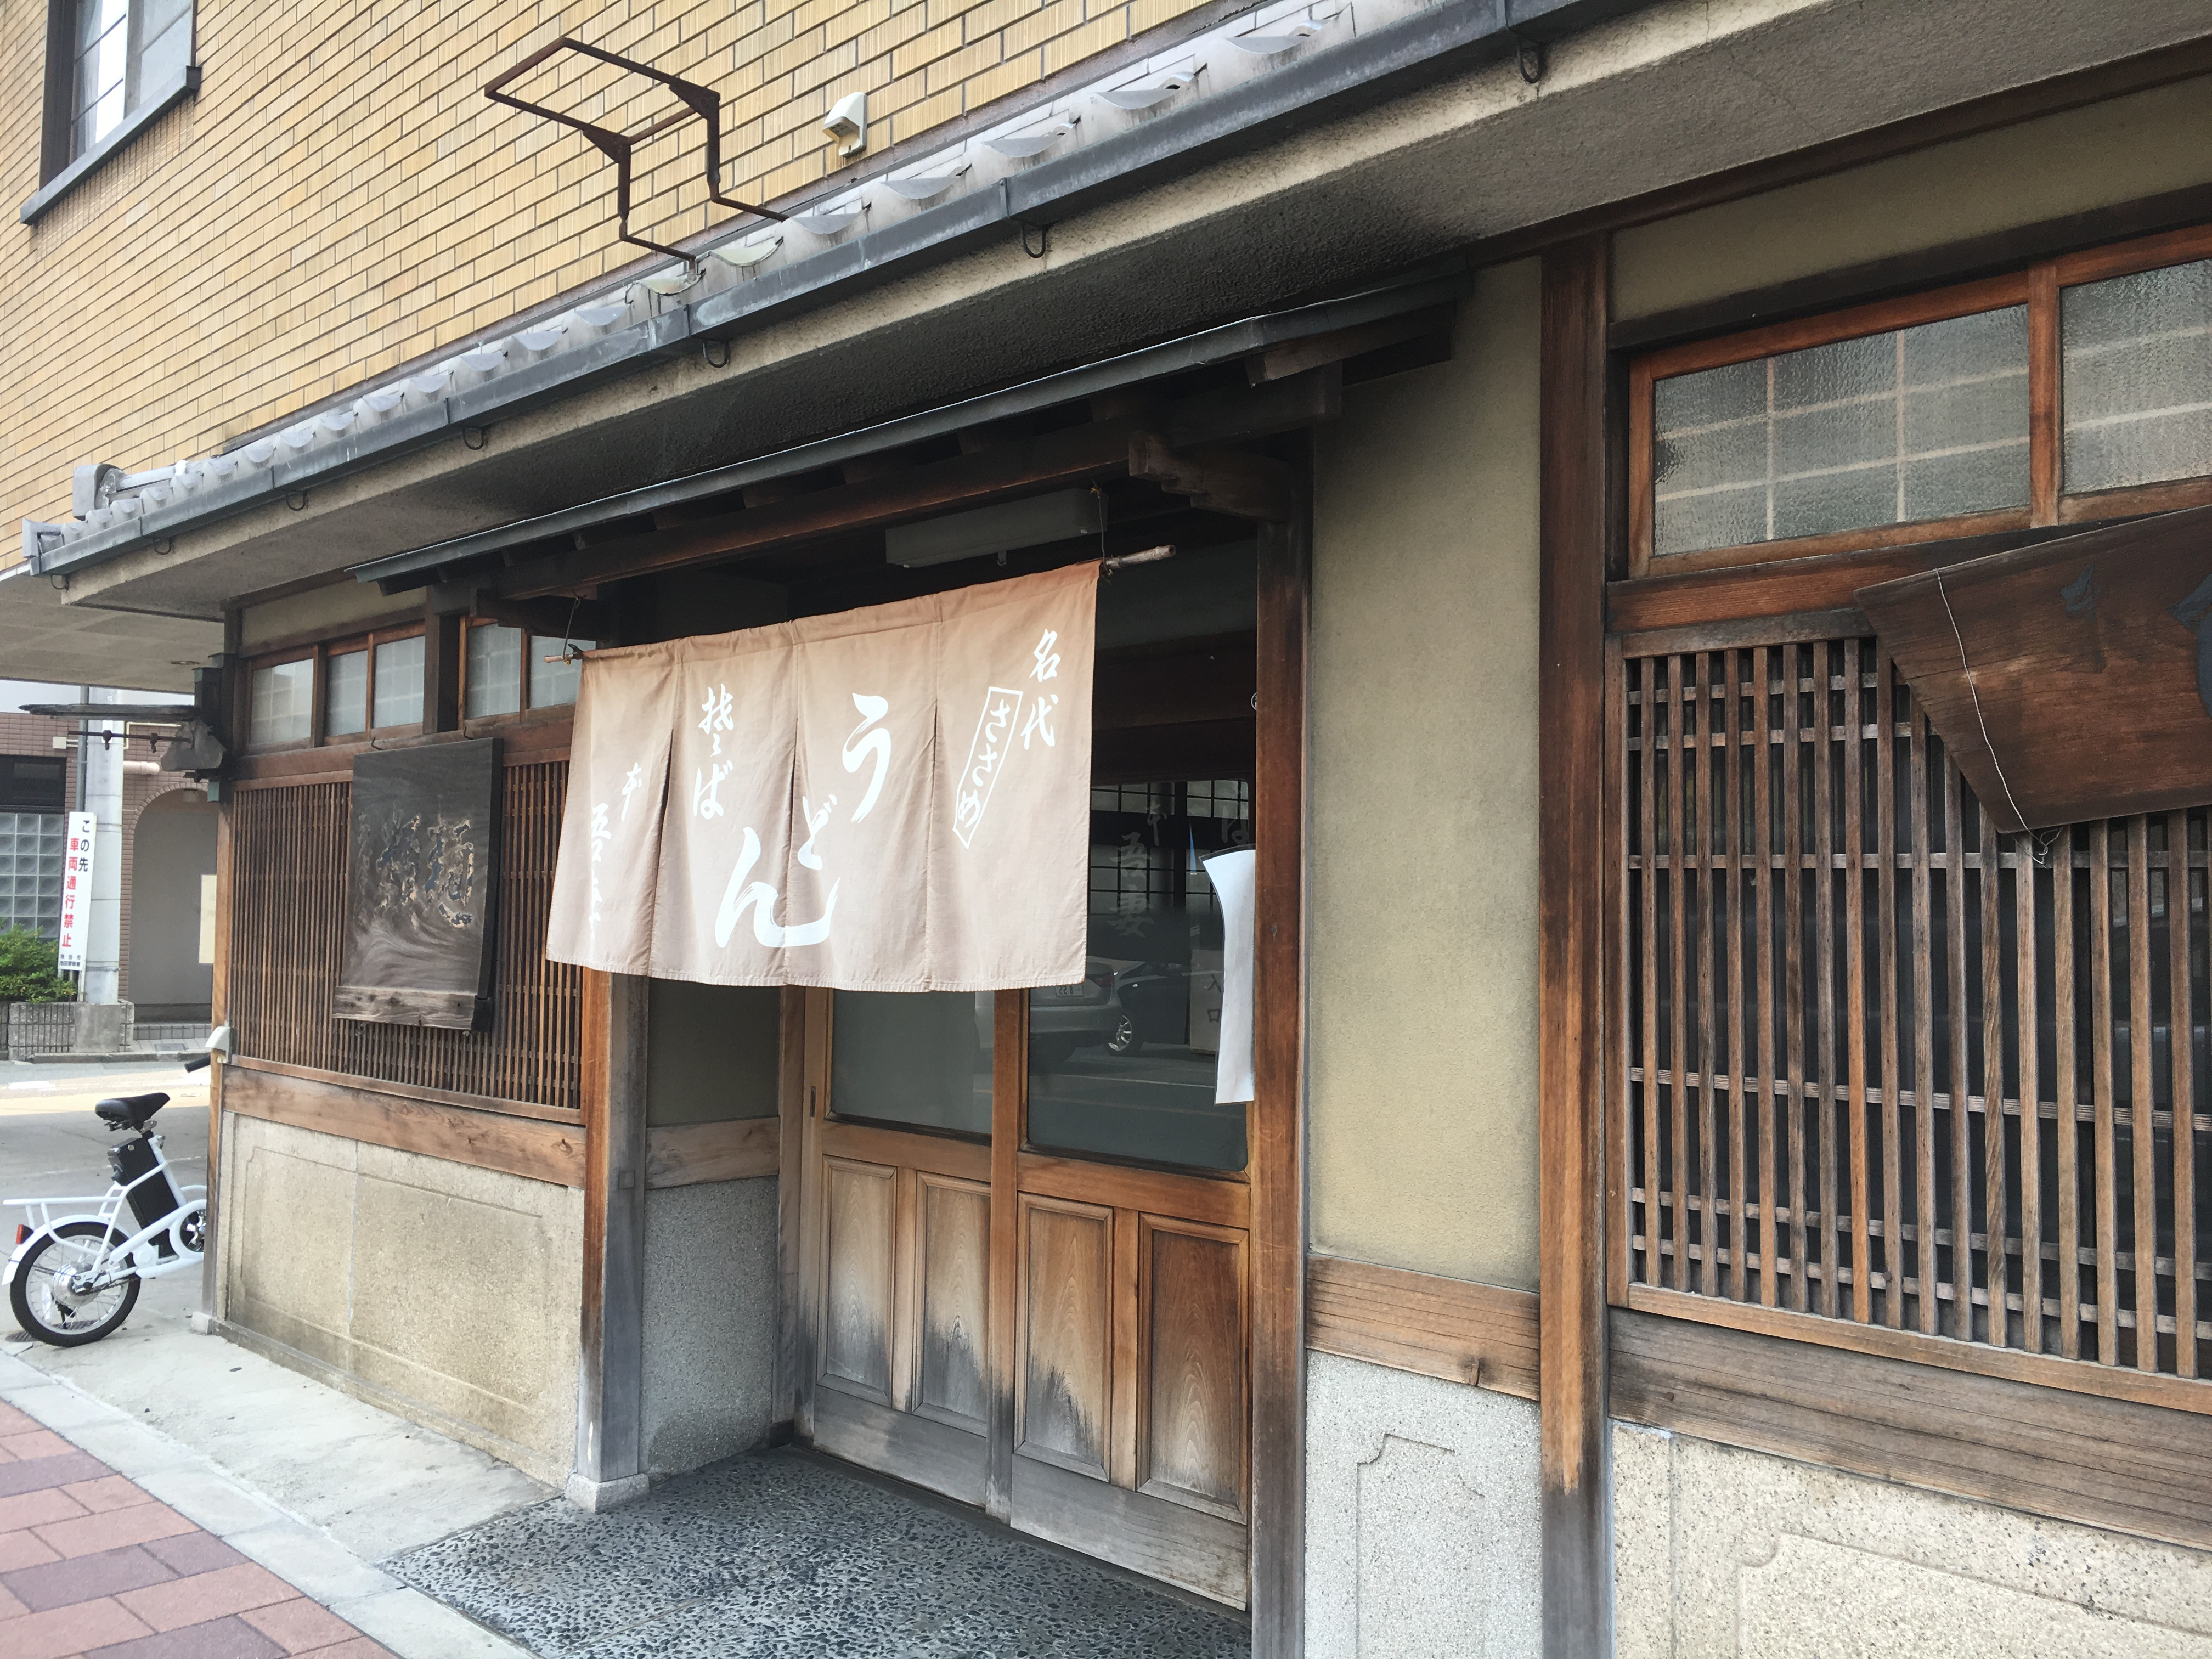 Stroe front of Azuma udon restaurant in Ikeda city